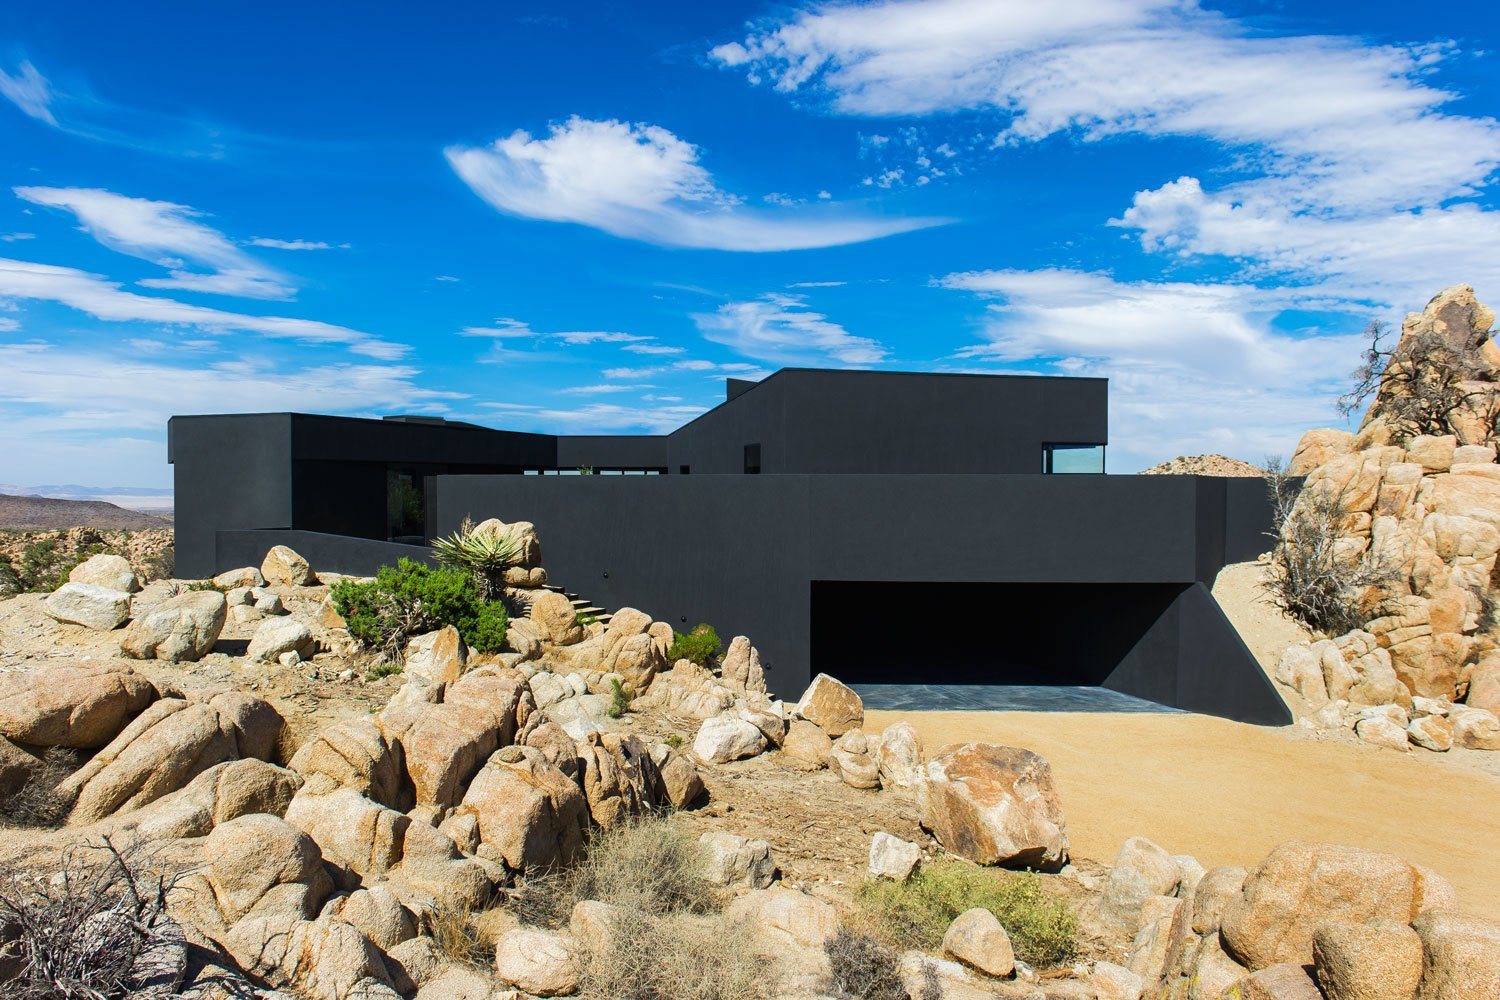 The house seems to claw onto the surrounding landscape, nestled on an outcropping with nearly 360 degree views of the surrounding desert.  A Sculptural Desert Escape Inspired by a Shadow by Caroline Wallis